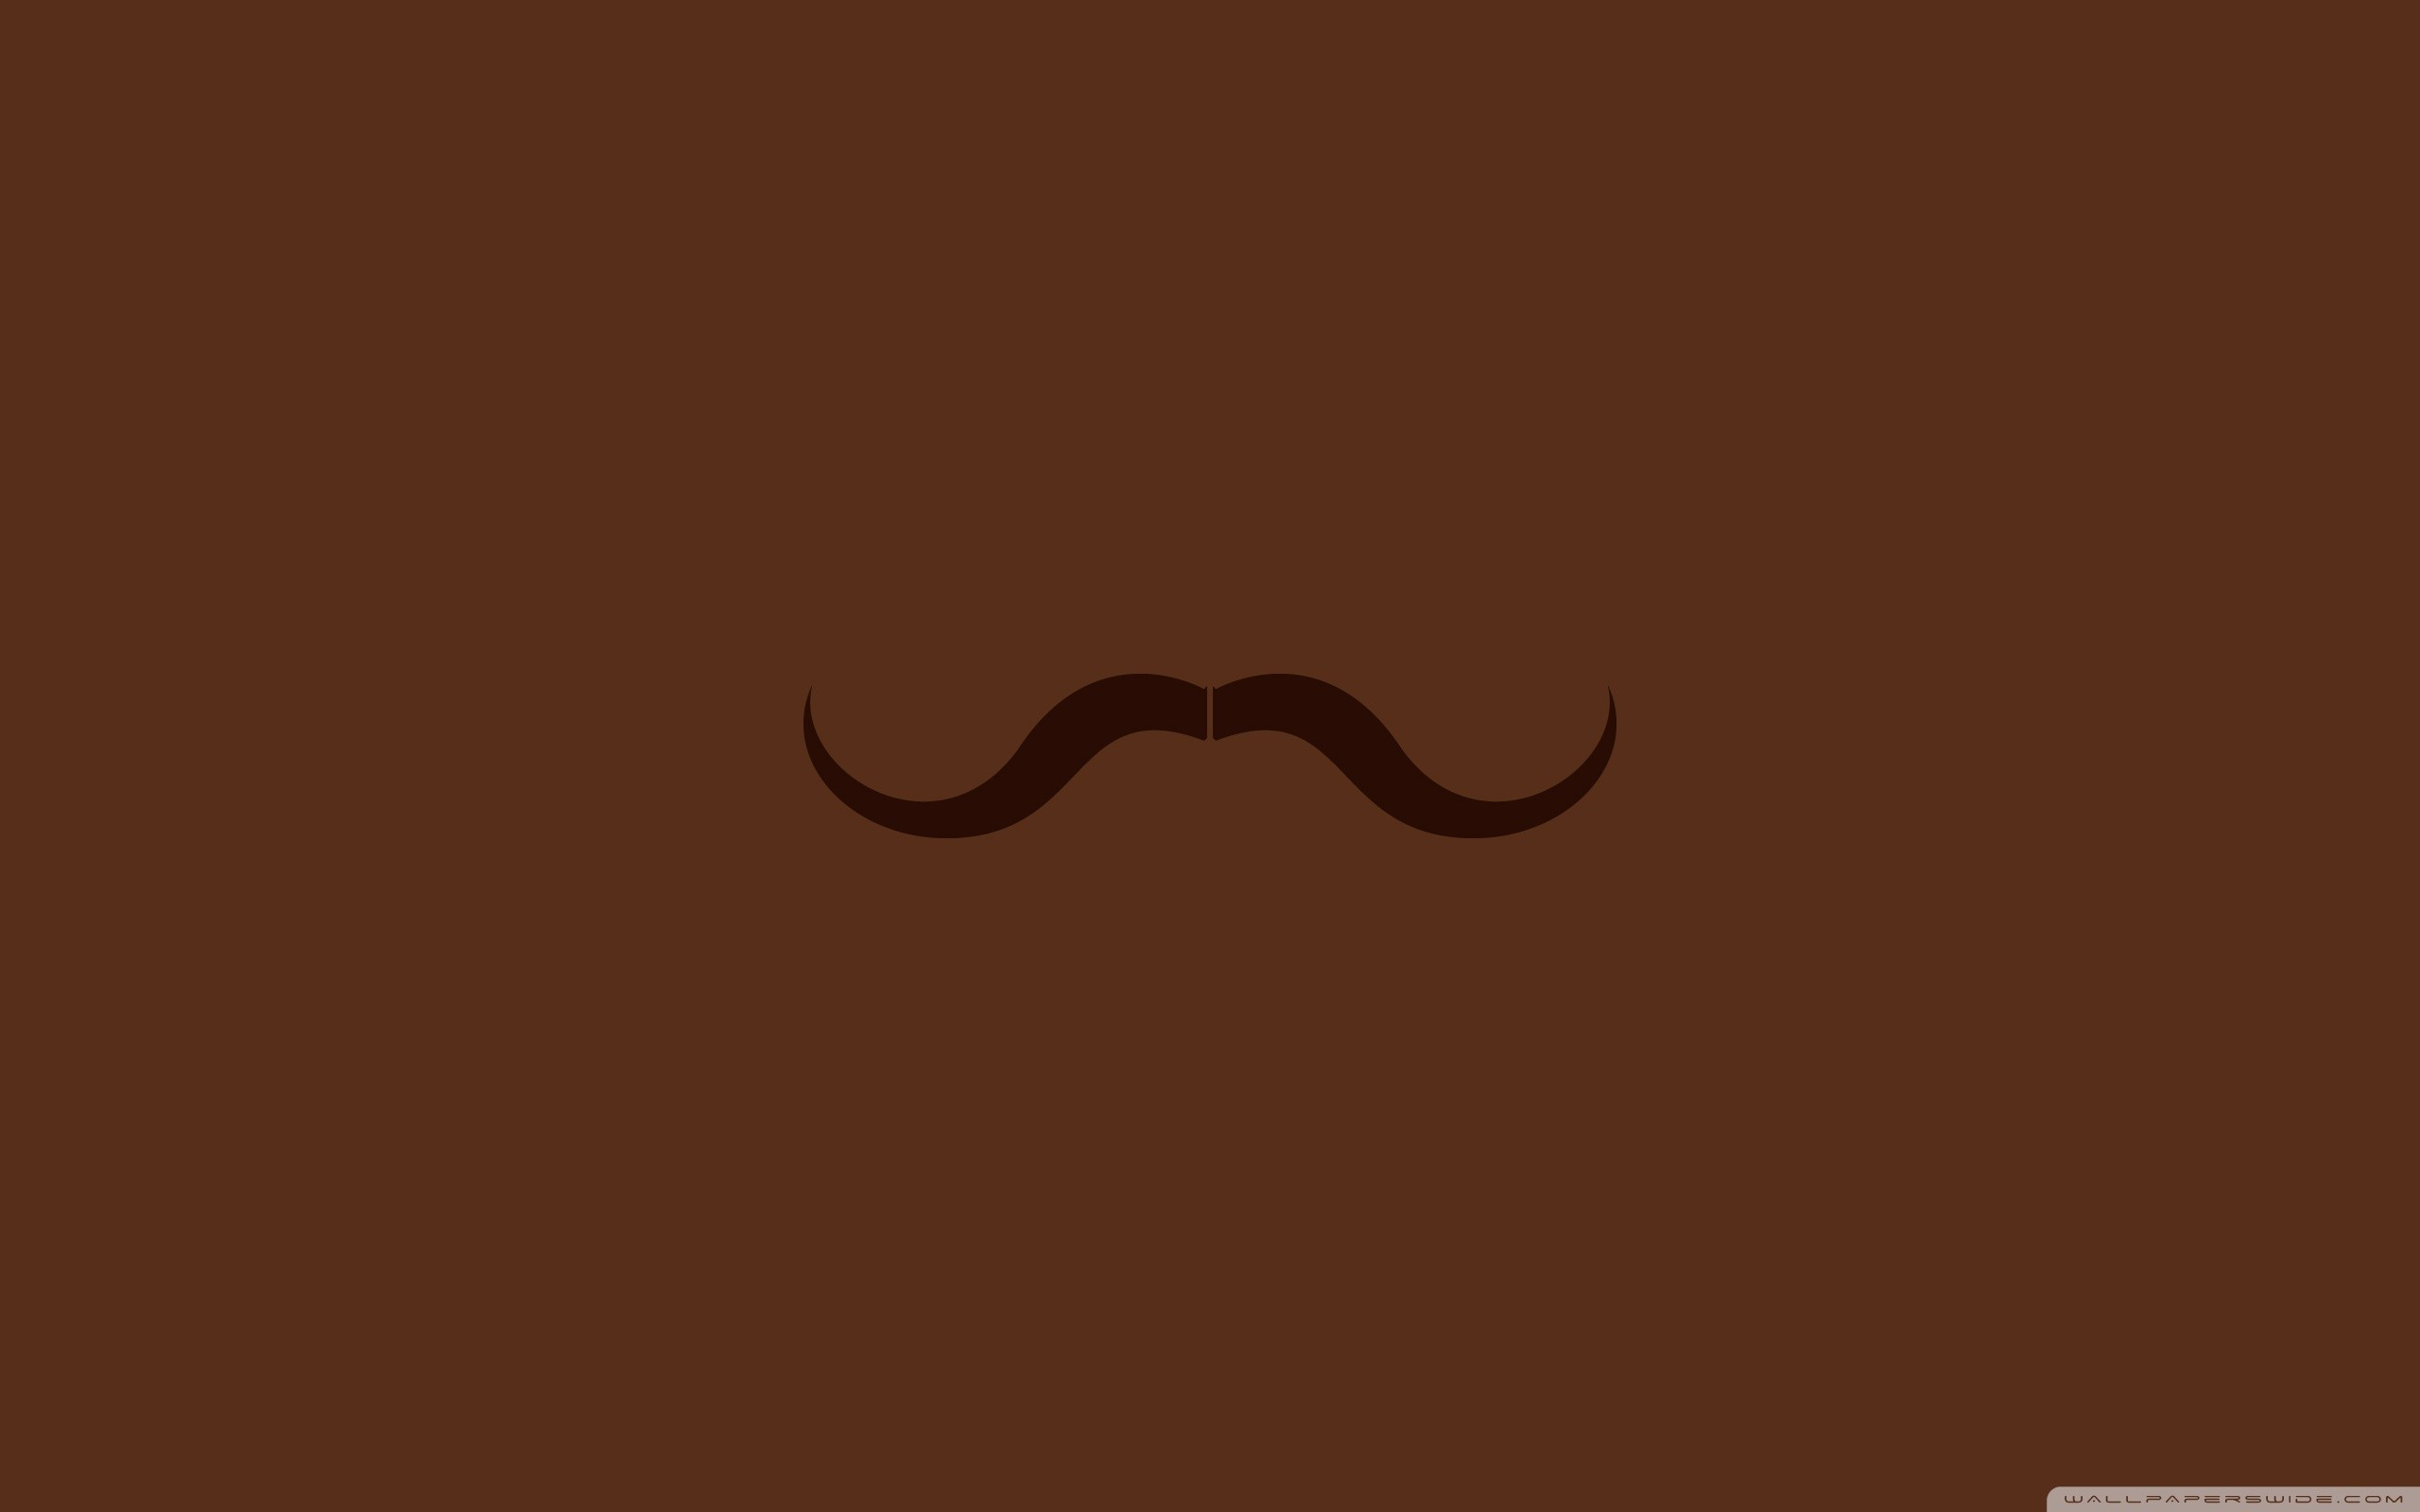 2560x1600 Moustache Club images moustache wallpaper HD wallpaper and background photos